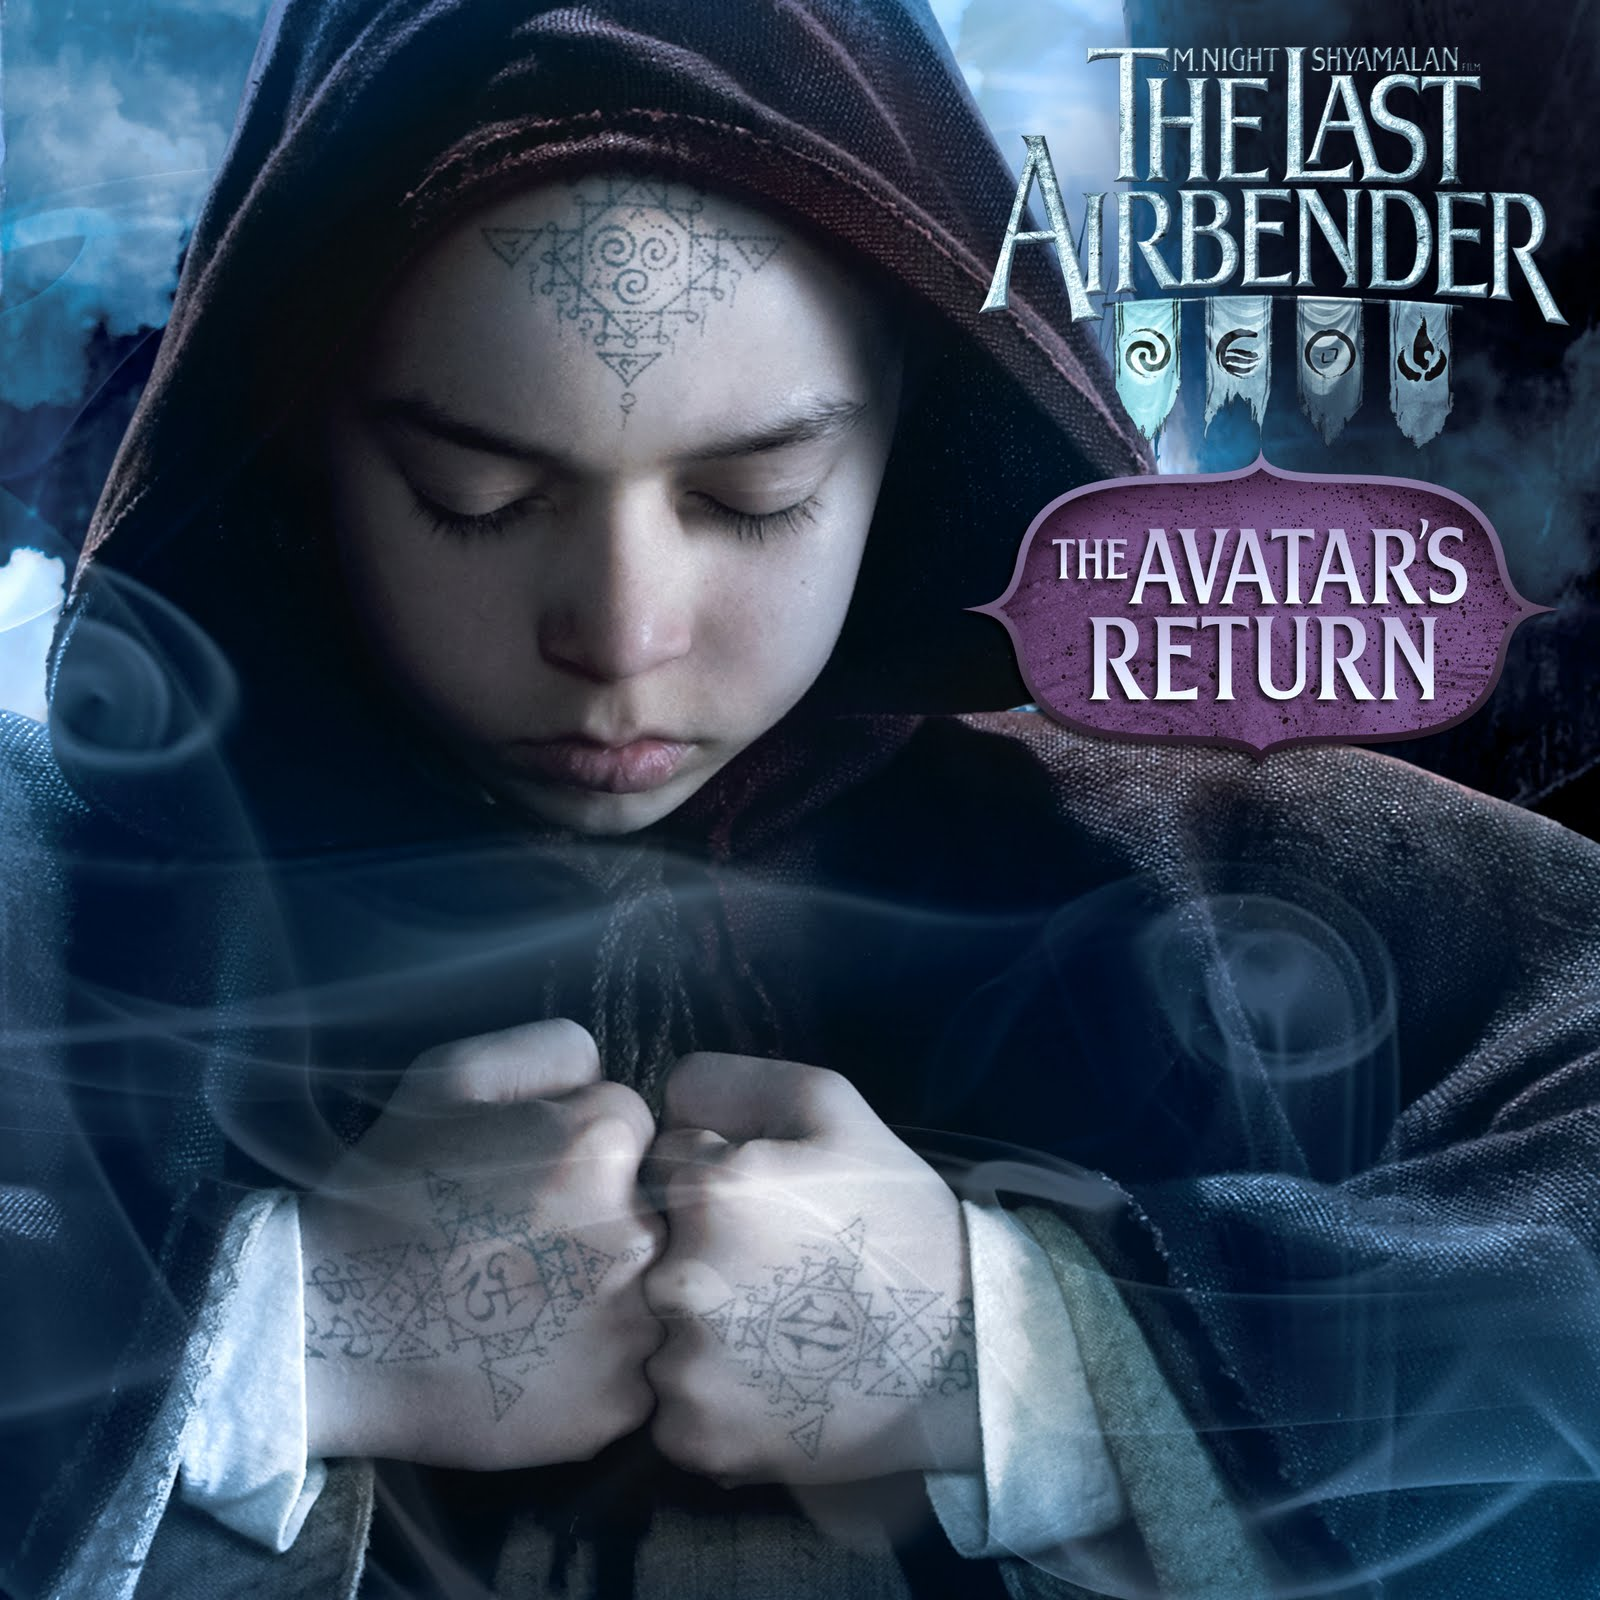 Avatar 2 Wallpaper: MyMovies: The Last Airbender (2010